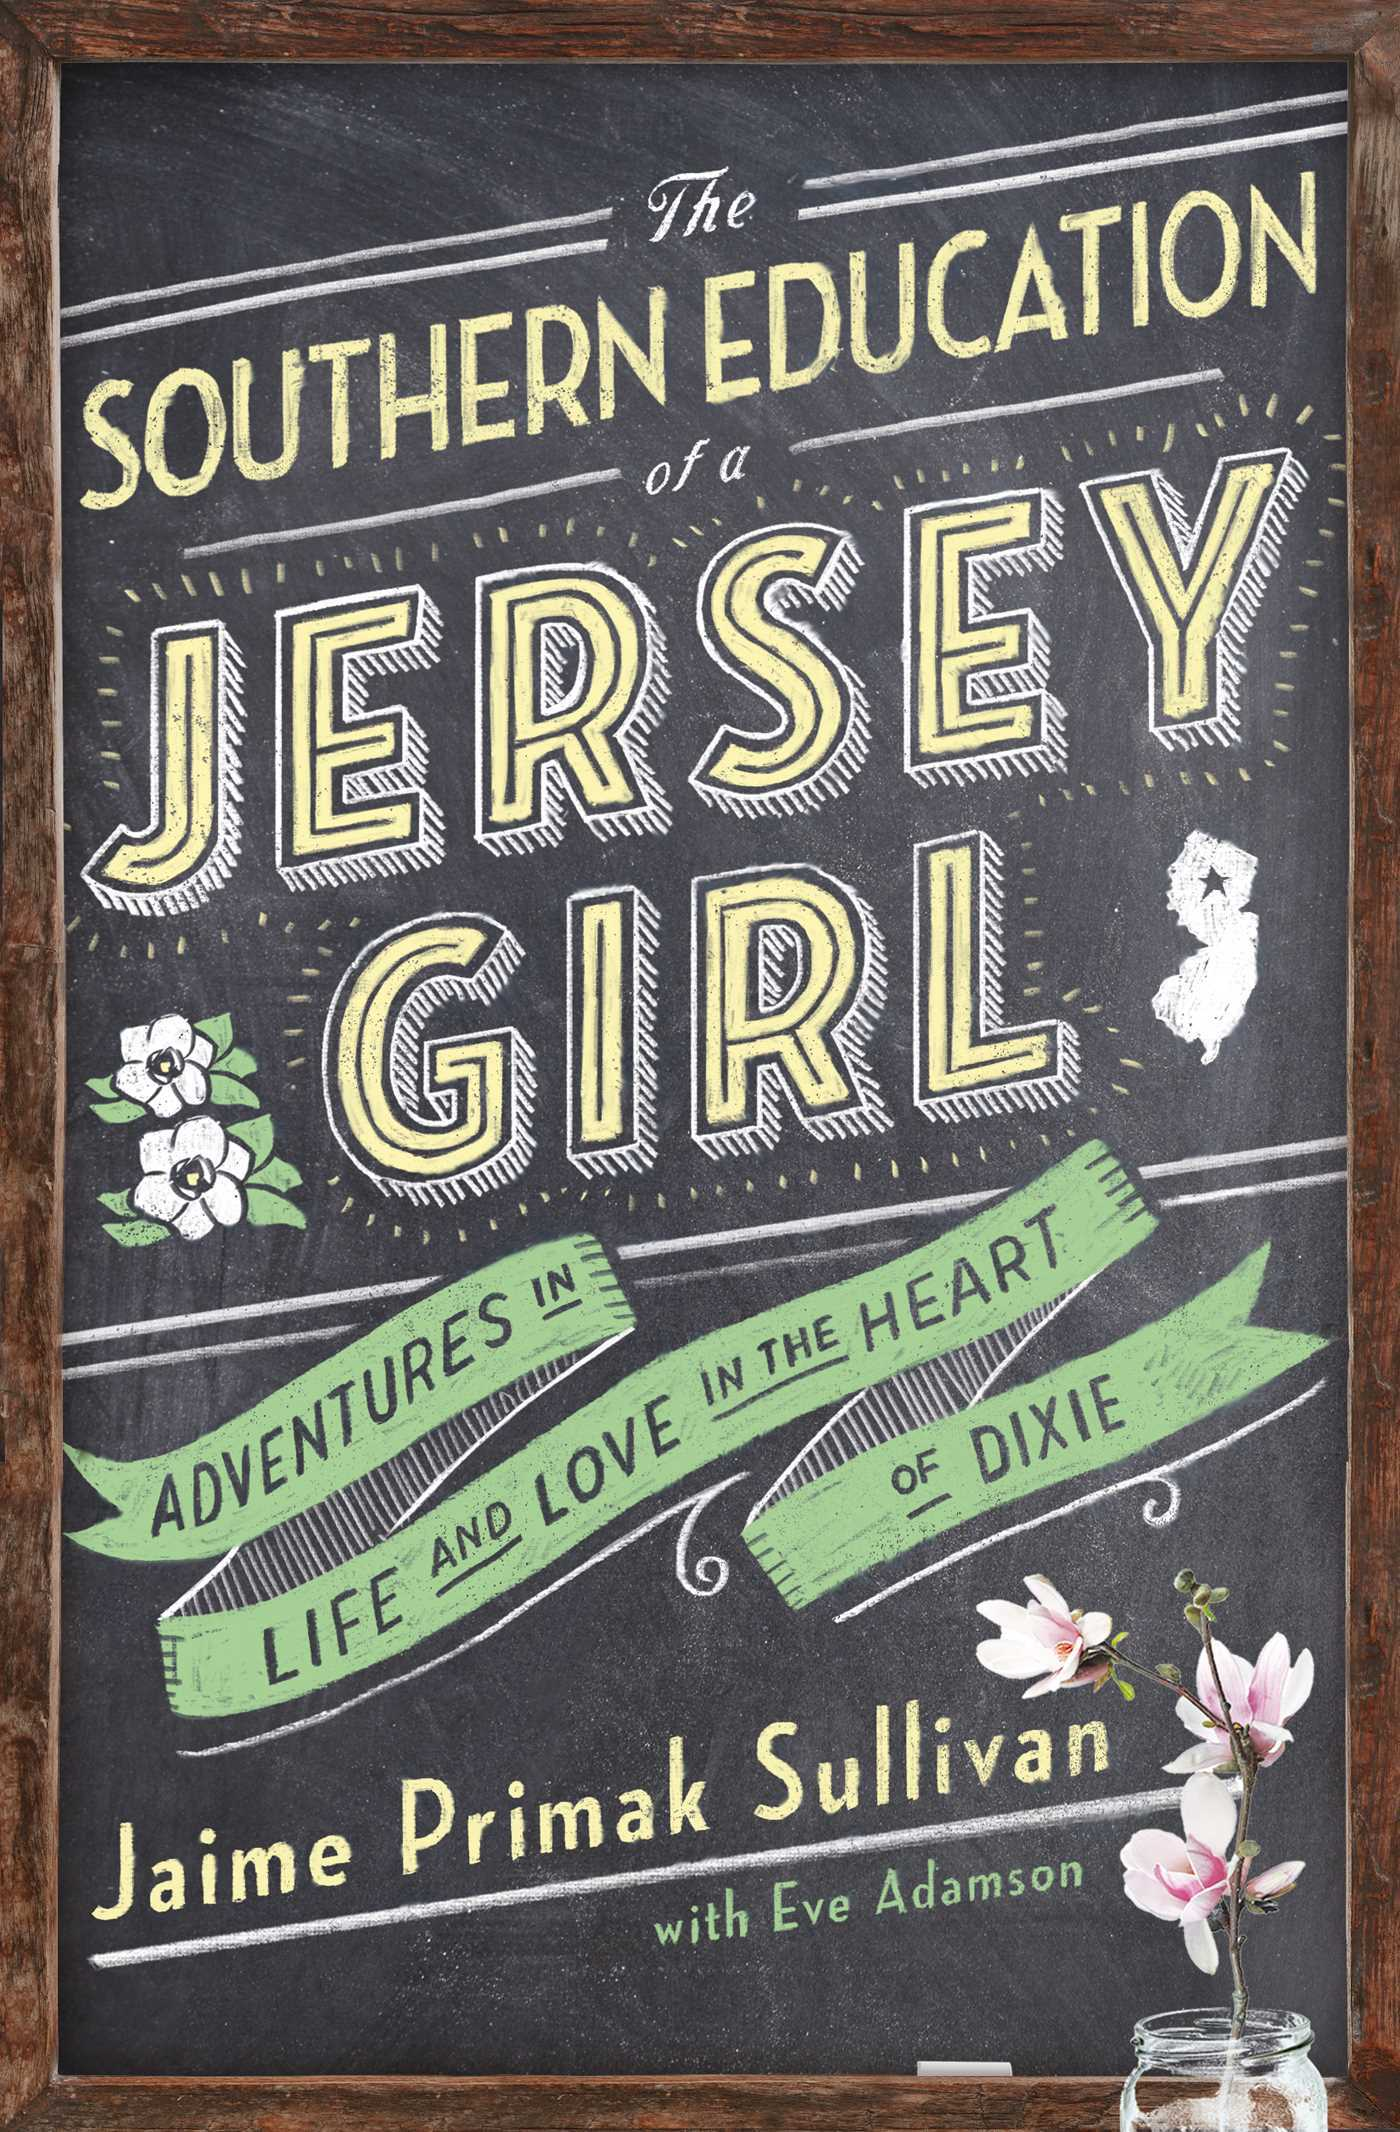 The Southern Education of a Jersey Girl: Adventures in Life and Love in the Heart of Dixie  by  Jaime Primak Sullivan